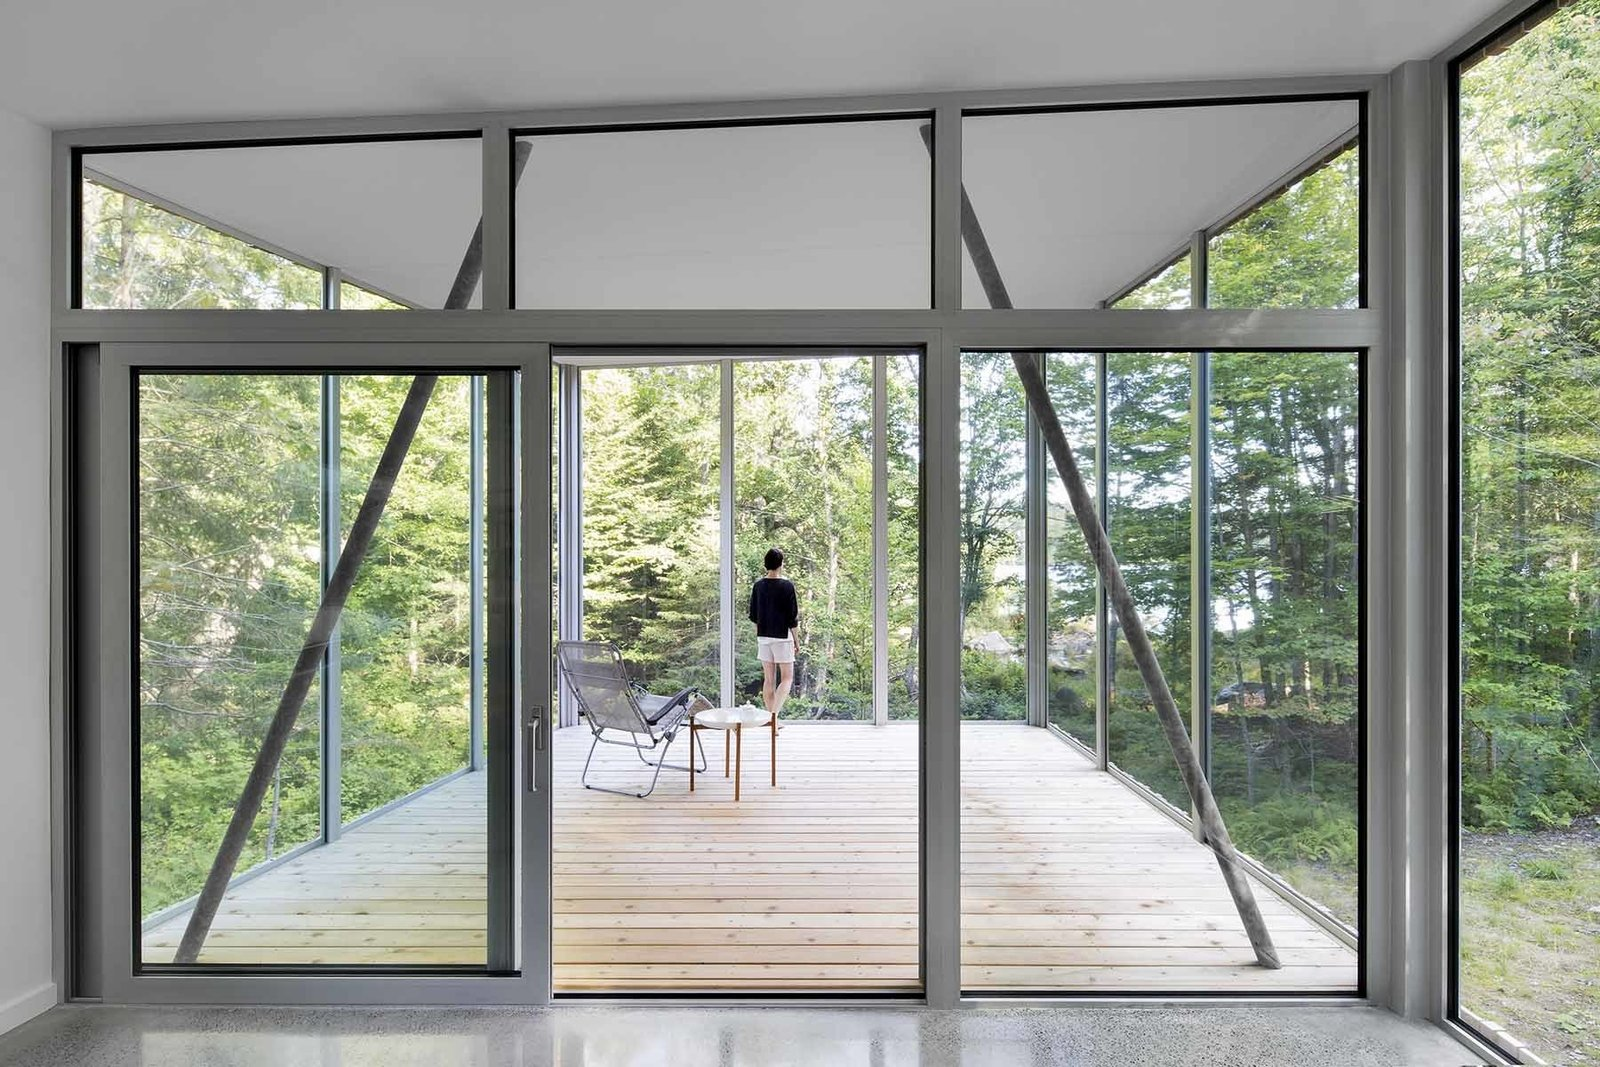 Large aluminum windows by Alumilex offer striking views while taking advantage of the sun's orientation. In the summer, the leafy trees help shield the house from heat. During cooler months, sunlight filters through bare tree branches to flood the home with warmth and light.  House of Lake Grenier by Tiffany Jow